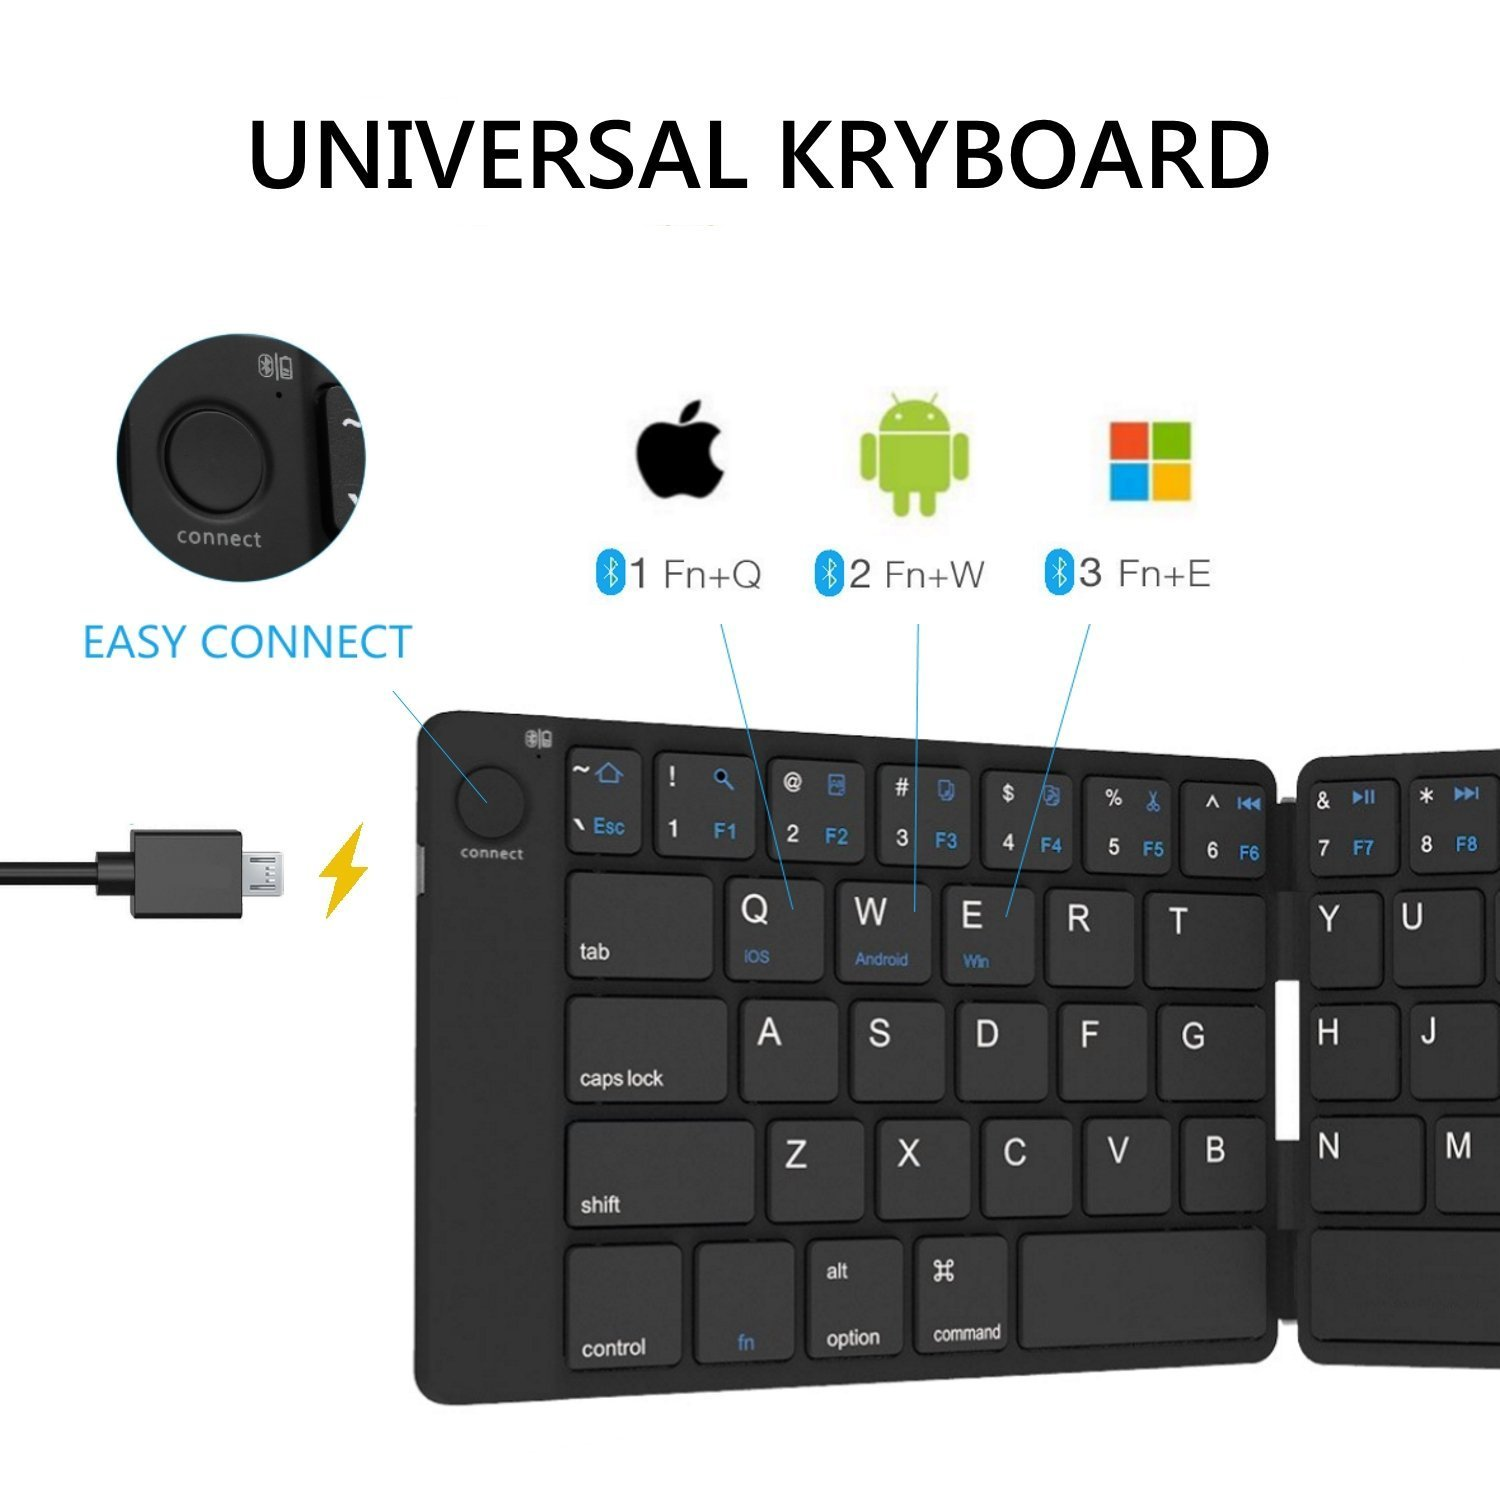 Bluetooth Folding Keyboard Foldable Bluetooth Keyboard Rechargable Full Size Folable Keyboard for IOS Phone Android Smartphone Tablet Windows Laptop by Joyzy (Image #2)